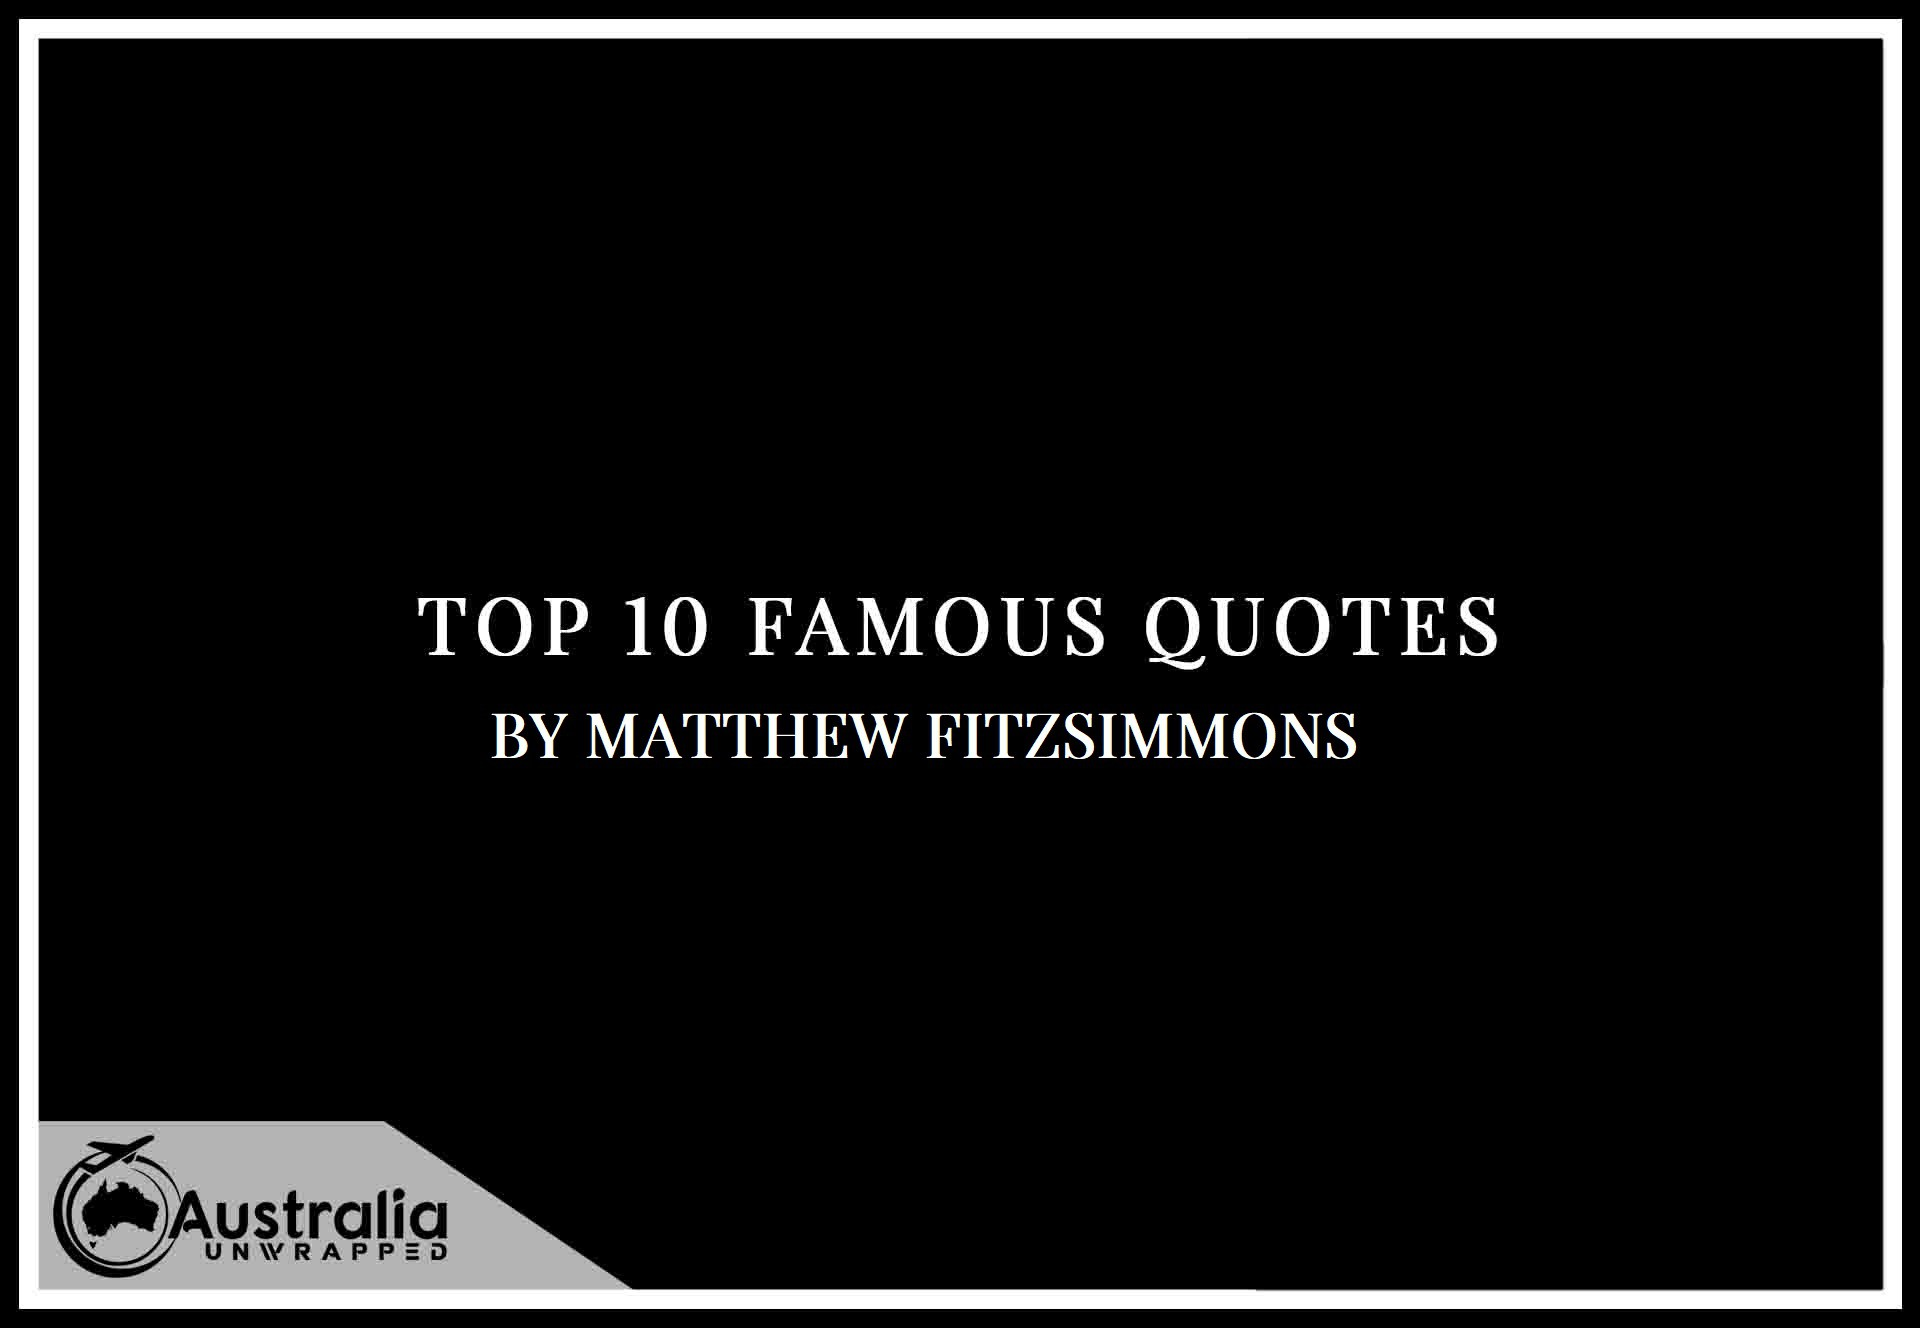 Top 10 Famous Quotes by Author Matthew FitzSimmons